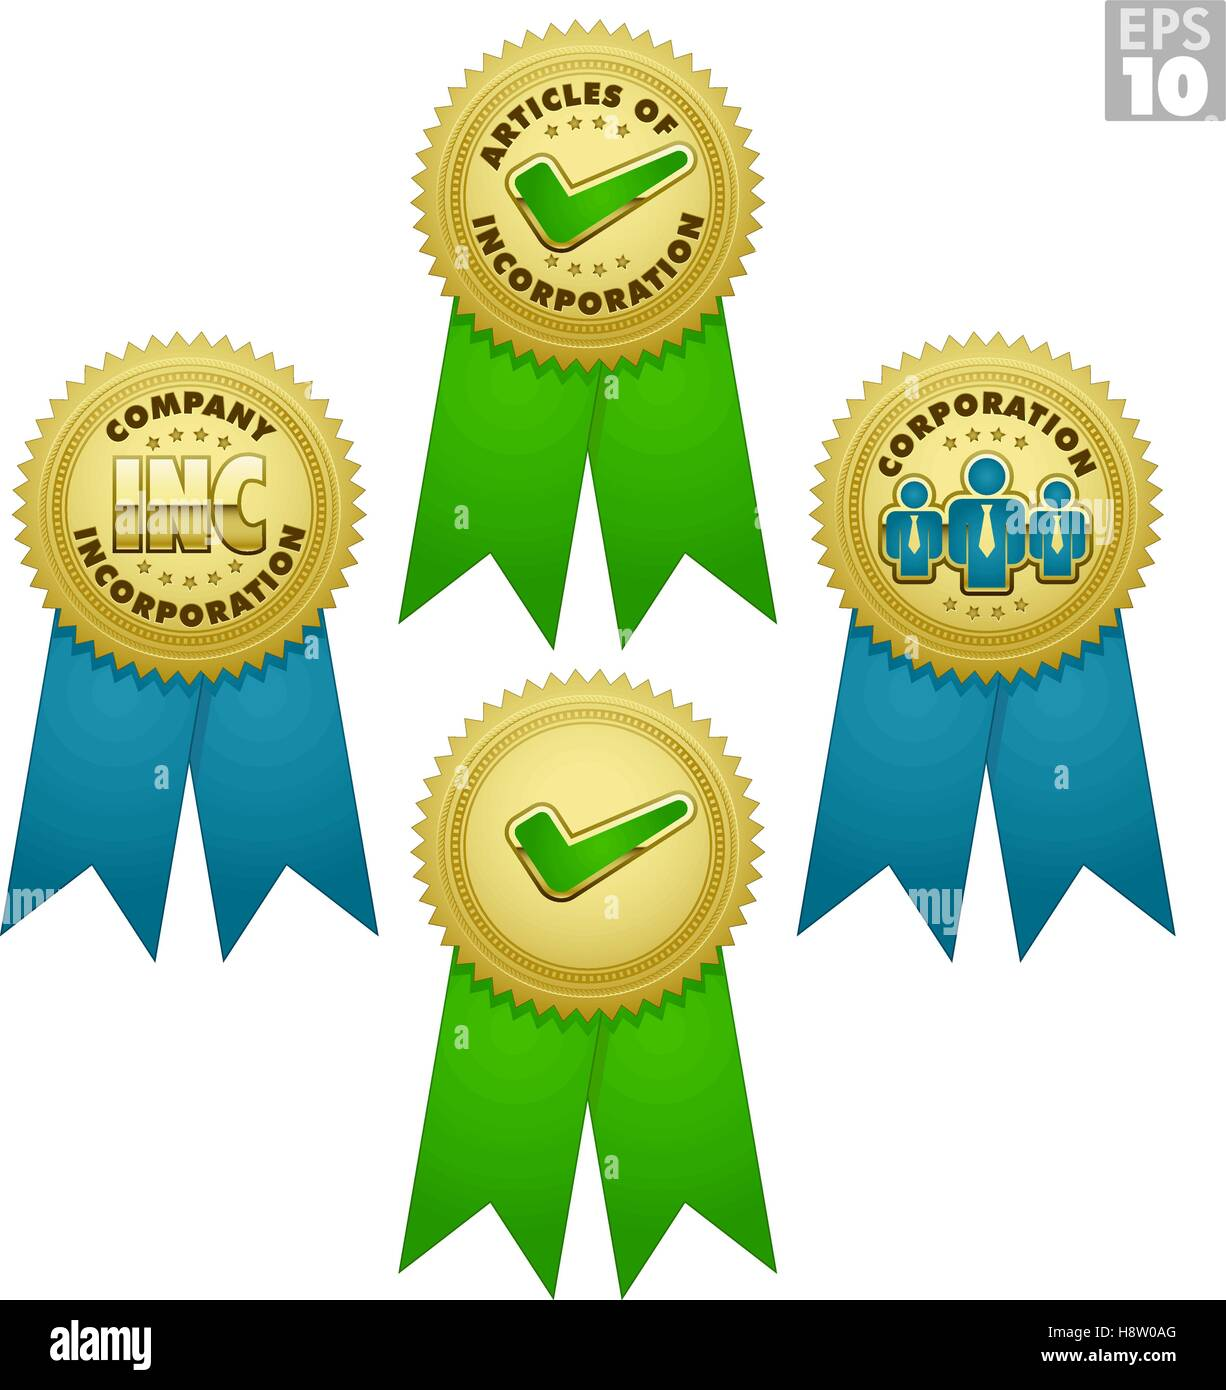 Gold medals, bursts for business incorporations, and approved award